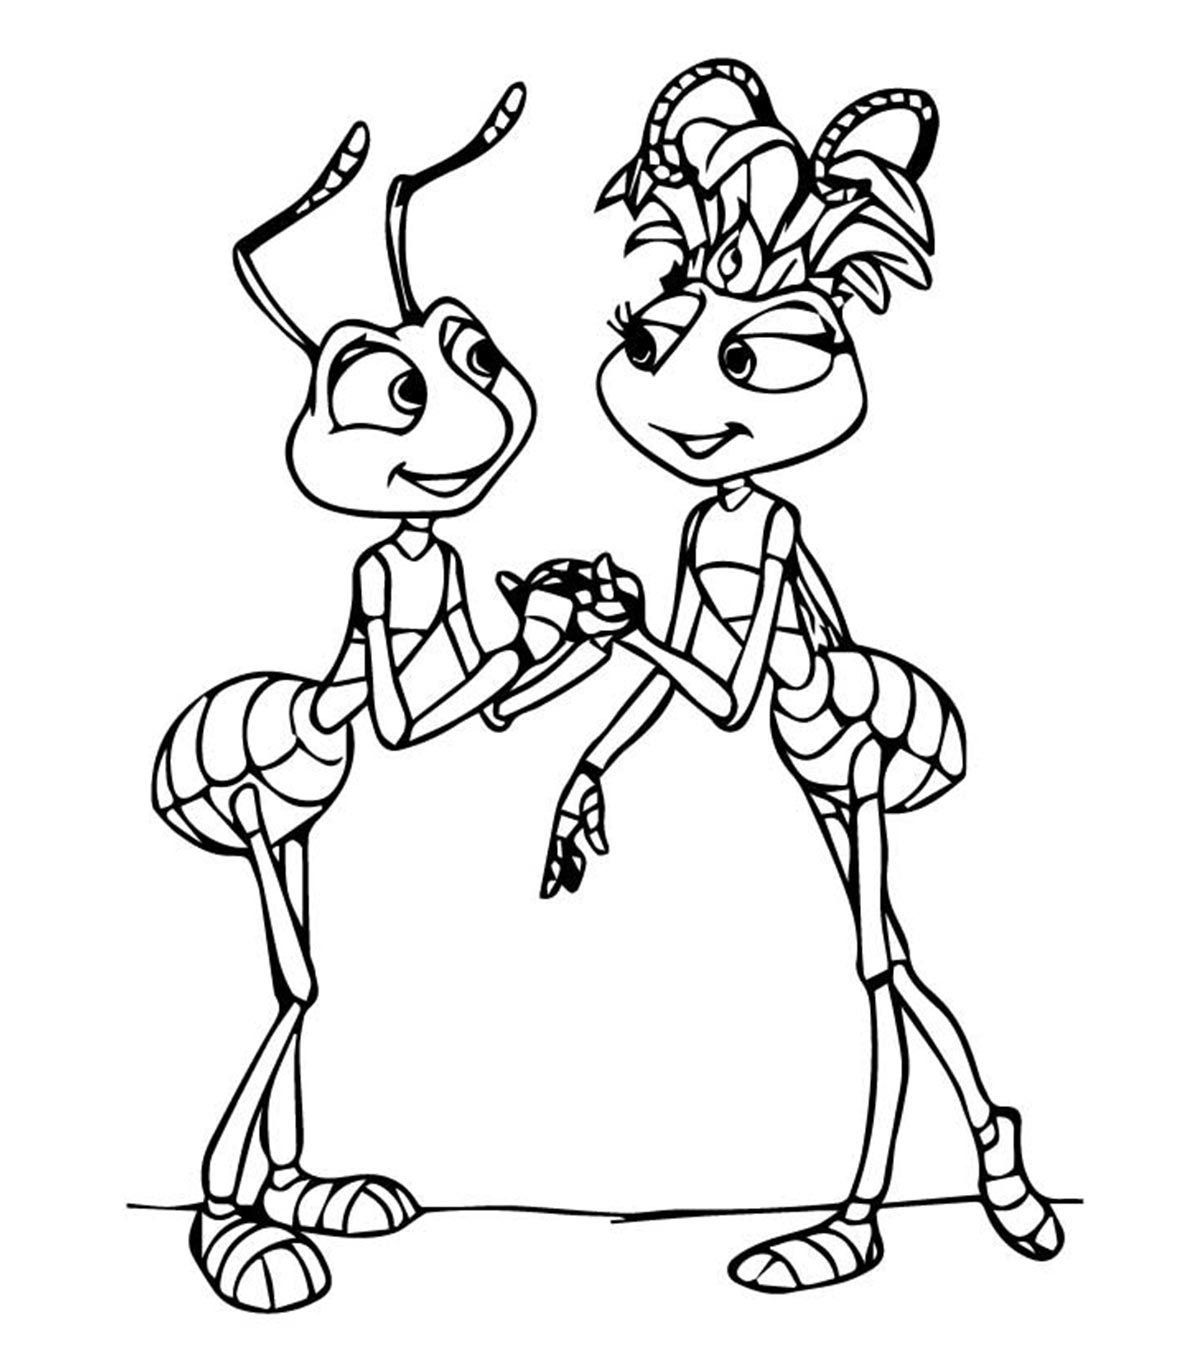 Free Printable Ants Coloring Pages